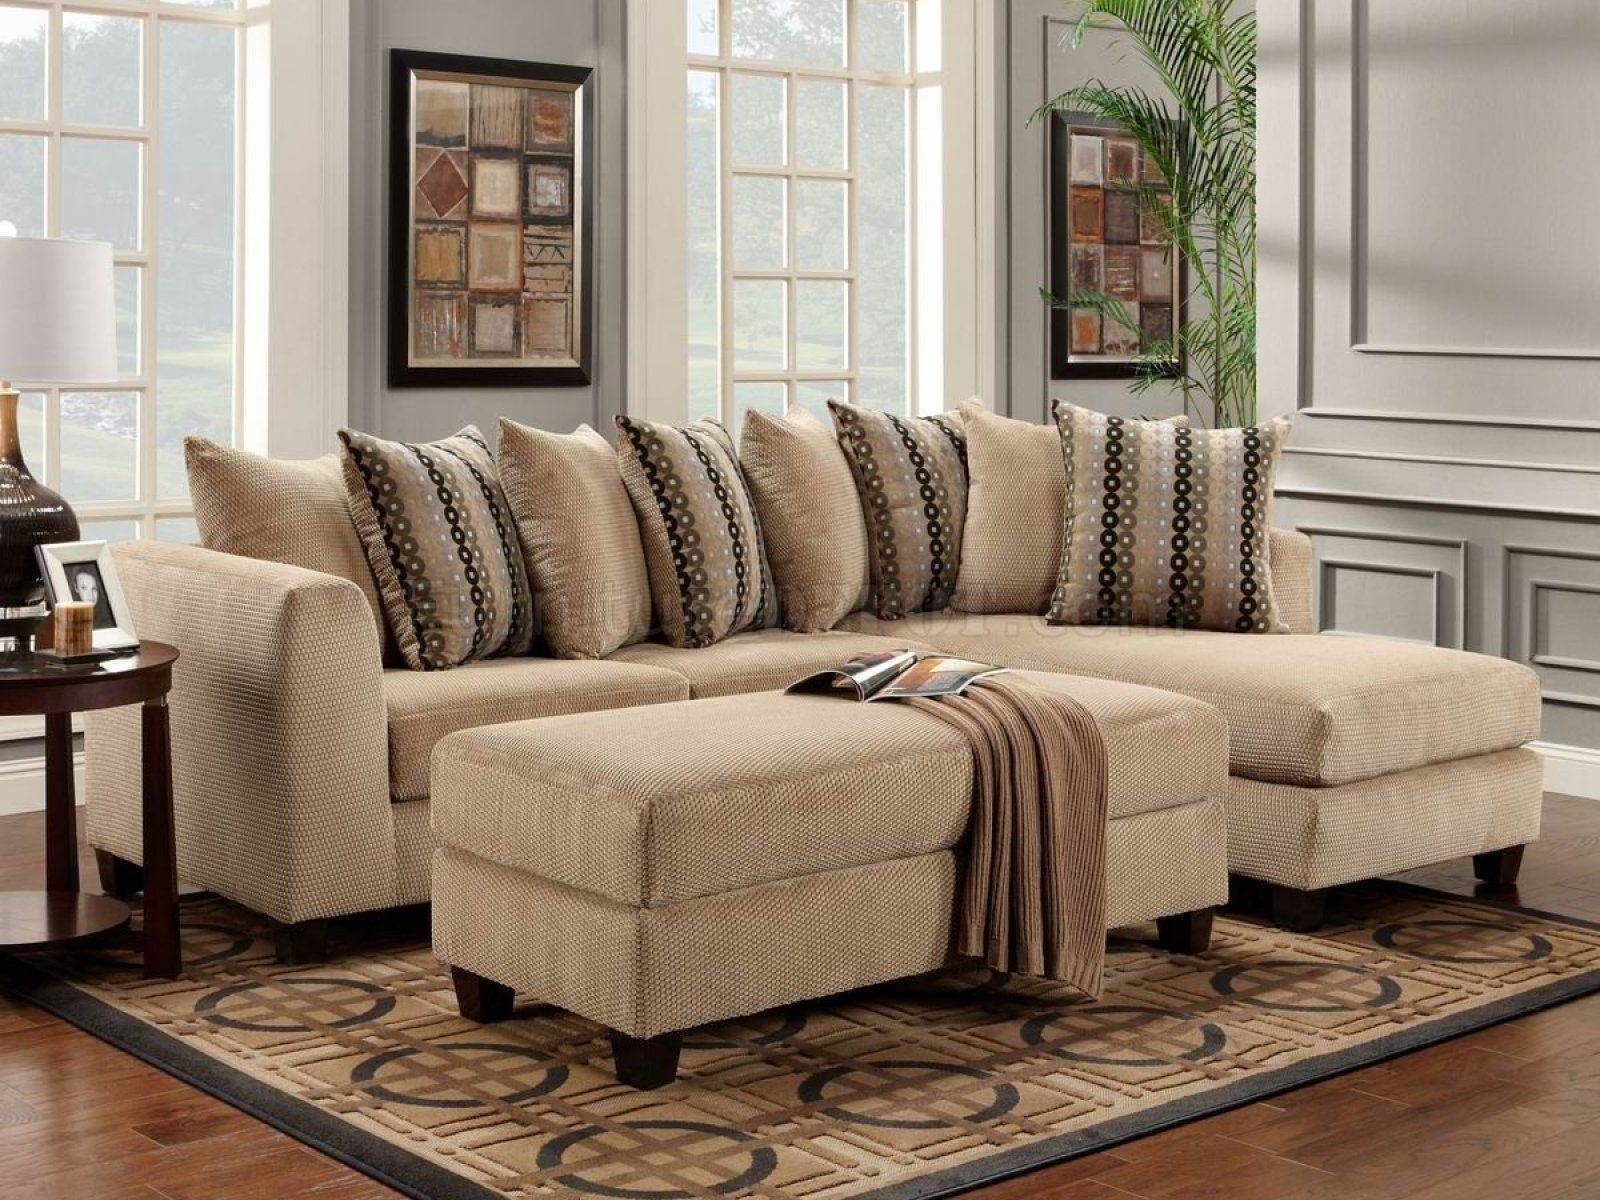 Inspiring Sofa Elegant Sectional With Talsma Furniture And Picture With Grand Rapids Mi Sectional Sofas (View 9 of 10)